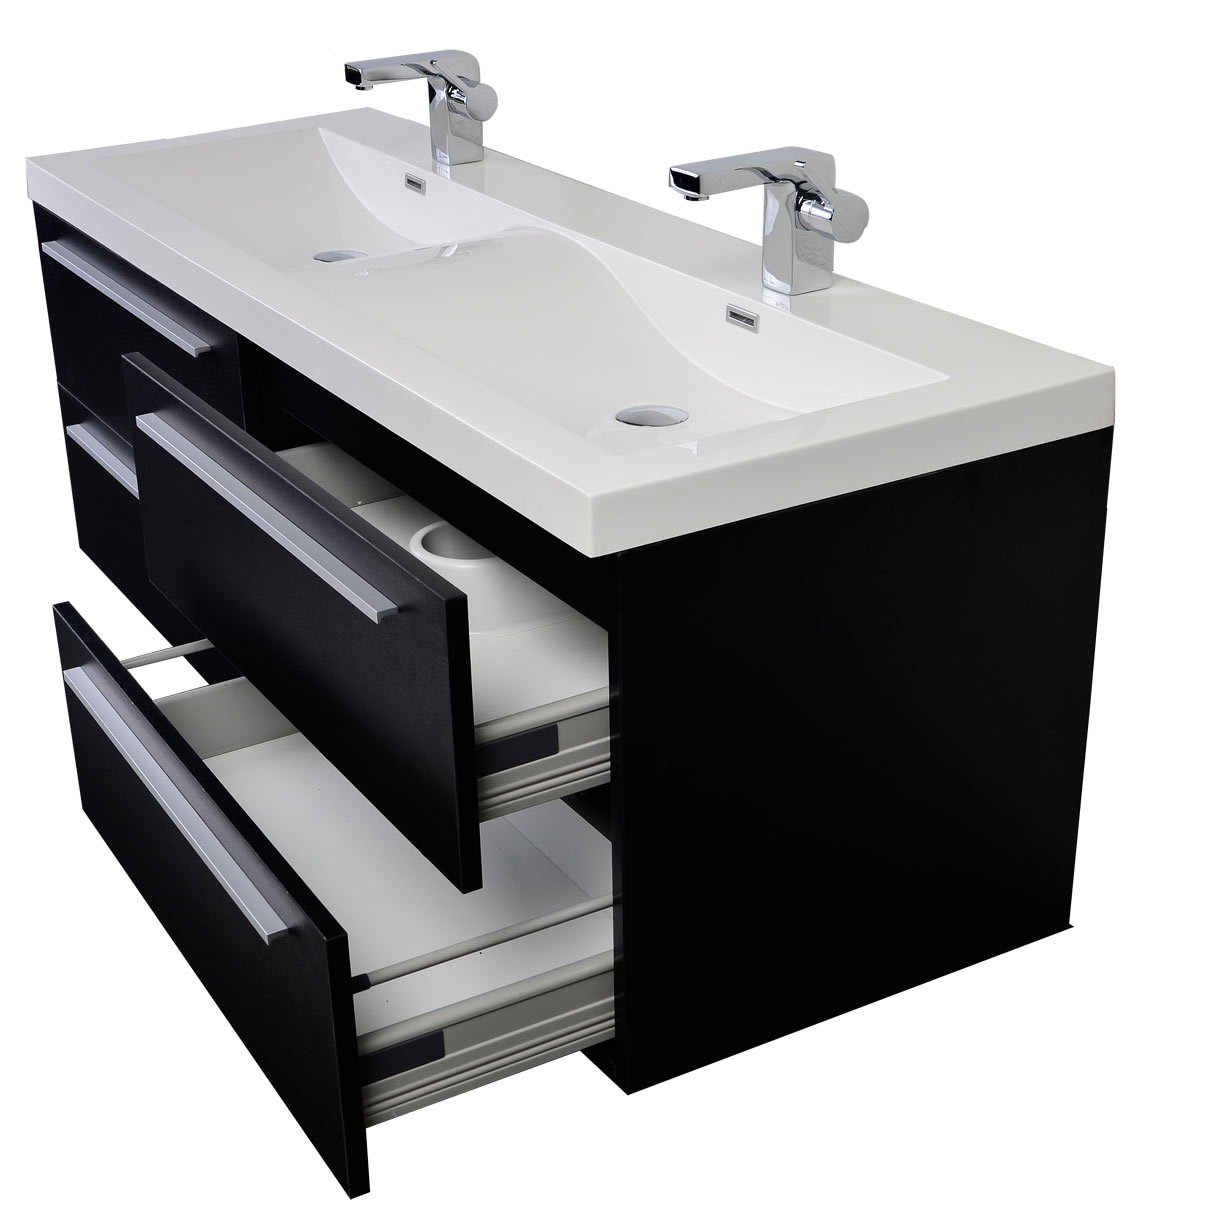 60 in modern bathroom double vanities cabinet vessel sink for Double basin bathroom sinks